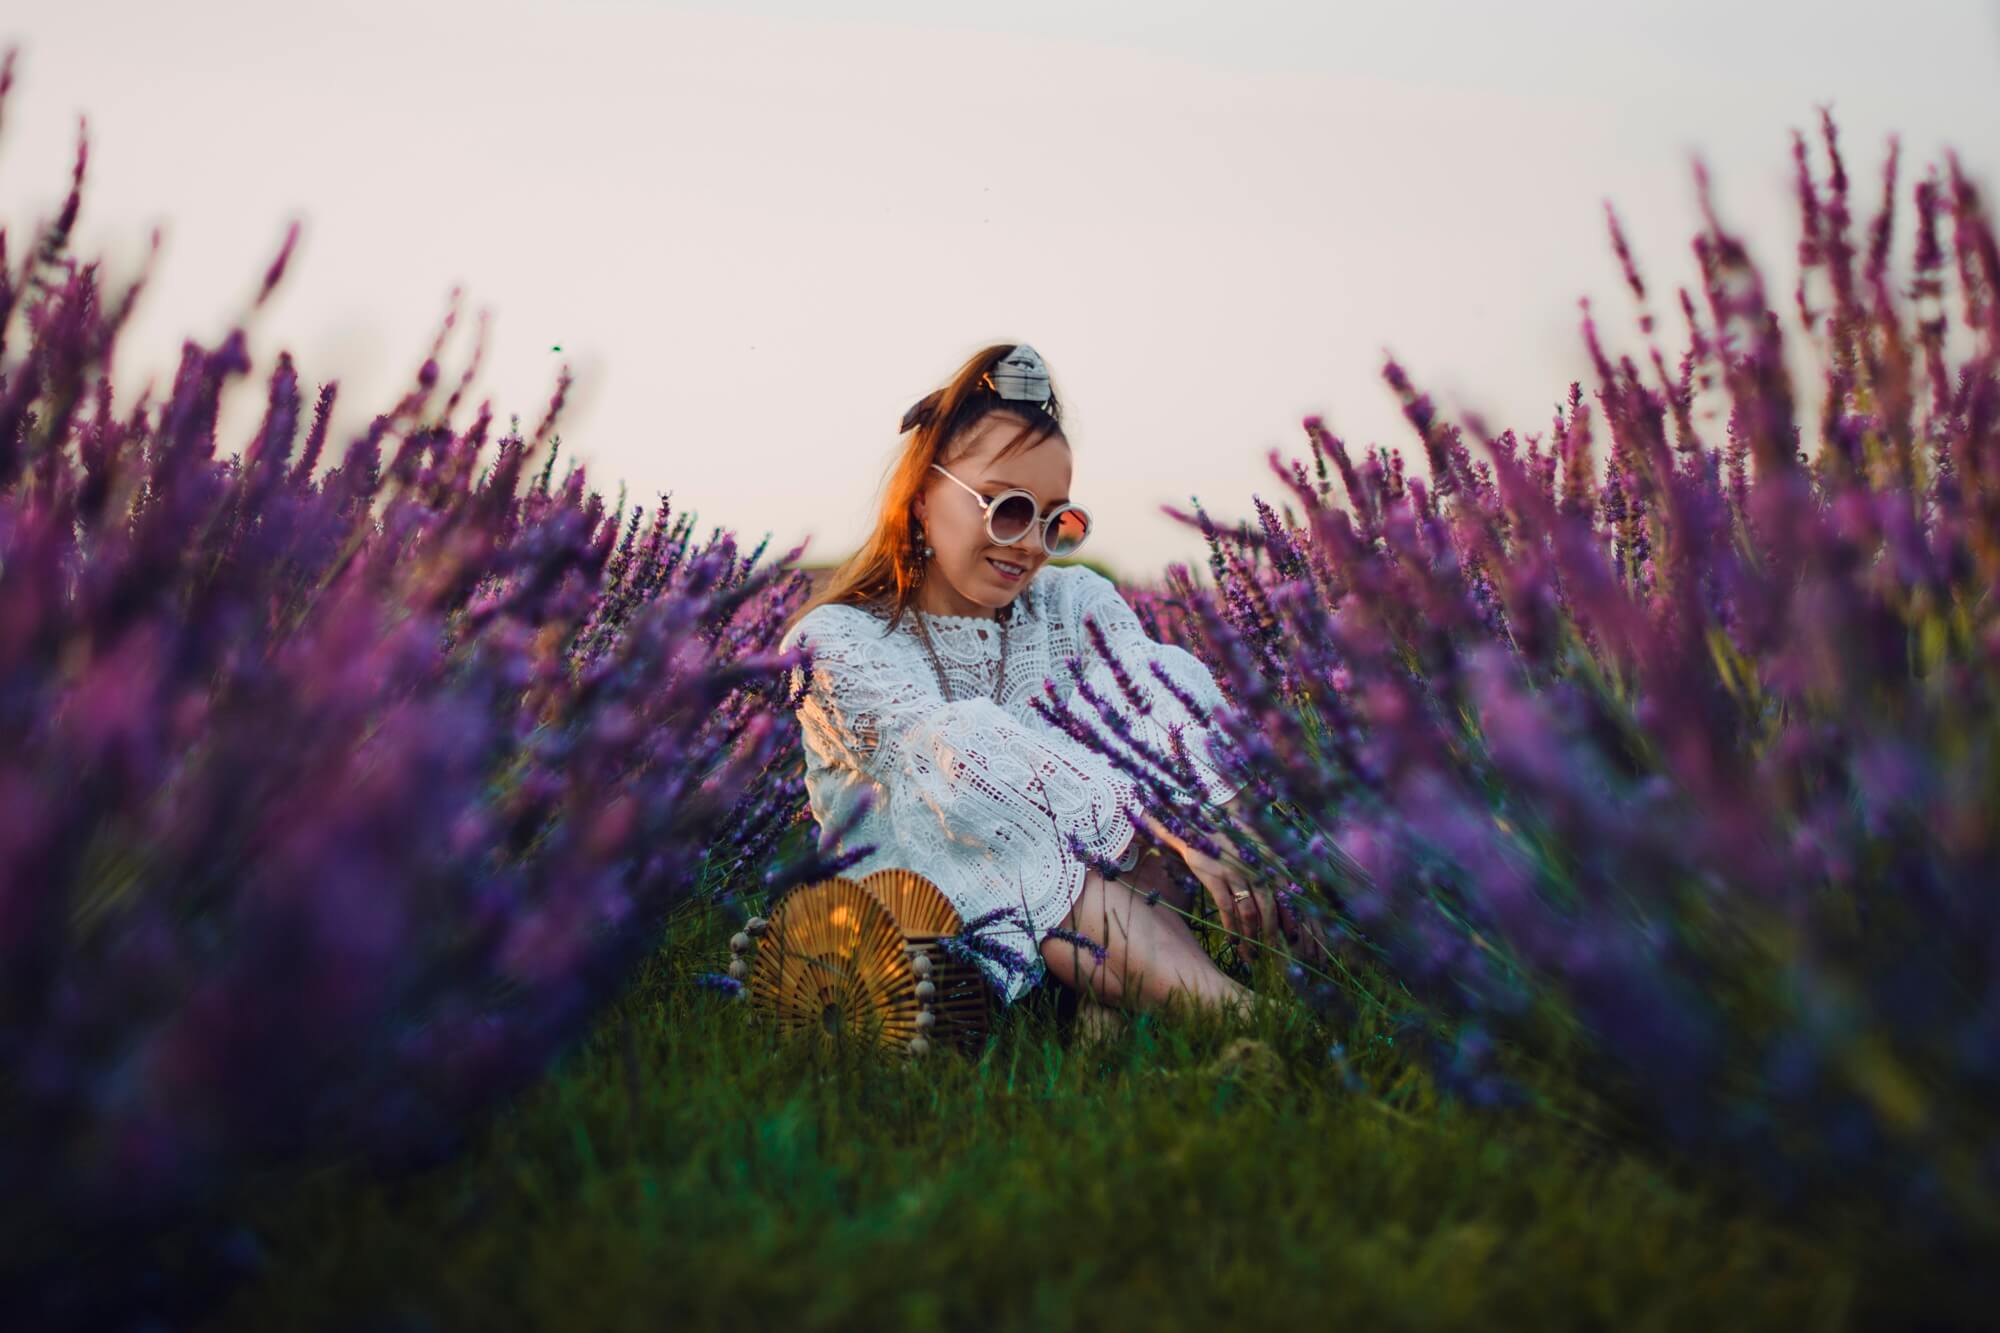 fashion blogger karyn white dress boho floral white slippers with bowtie lavender field photoshoot photos inpsiration boho look chick look